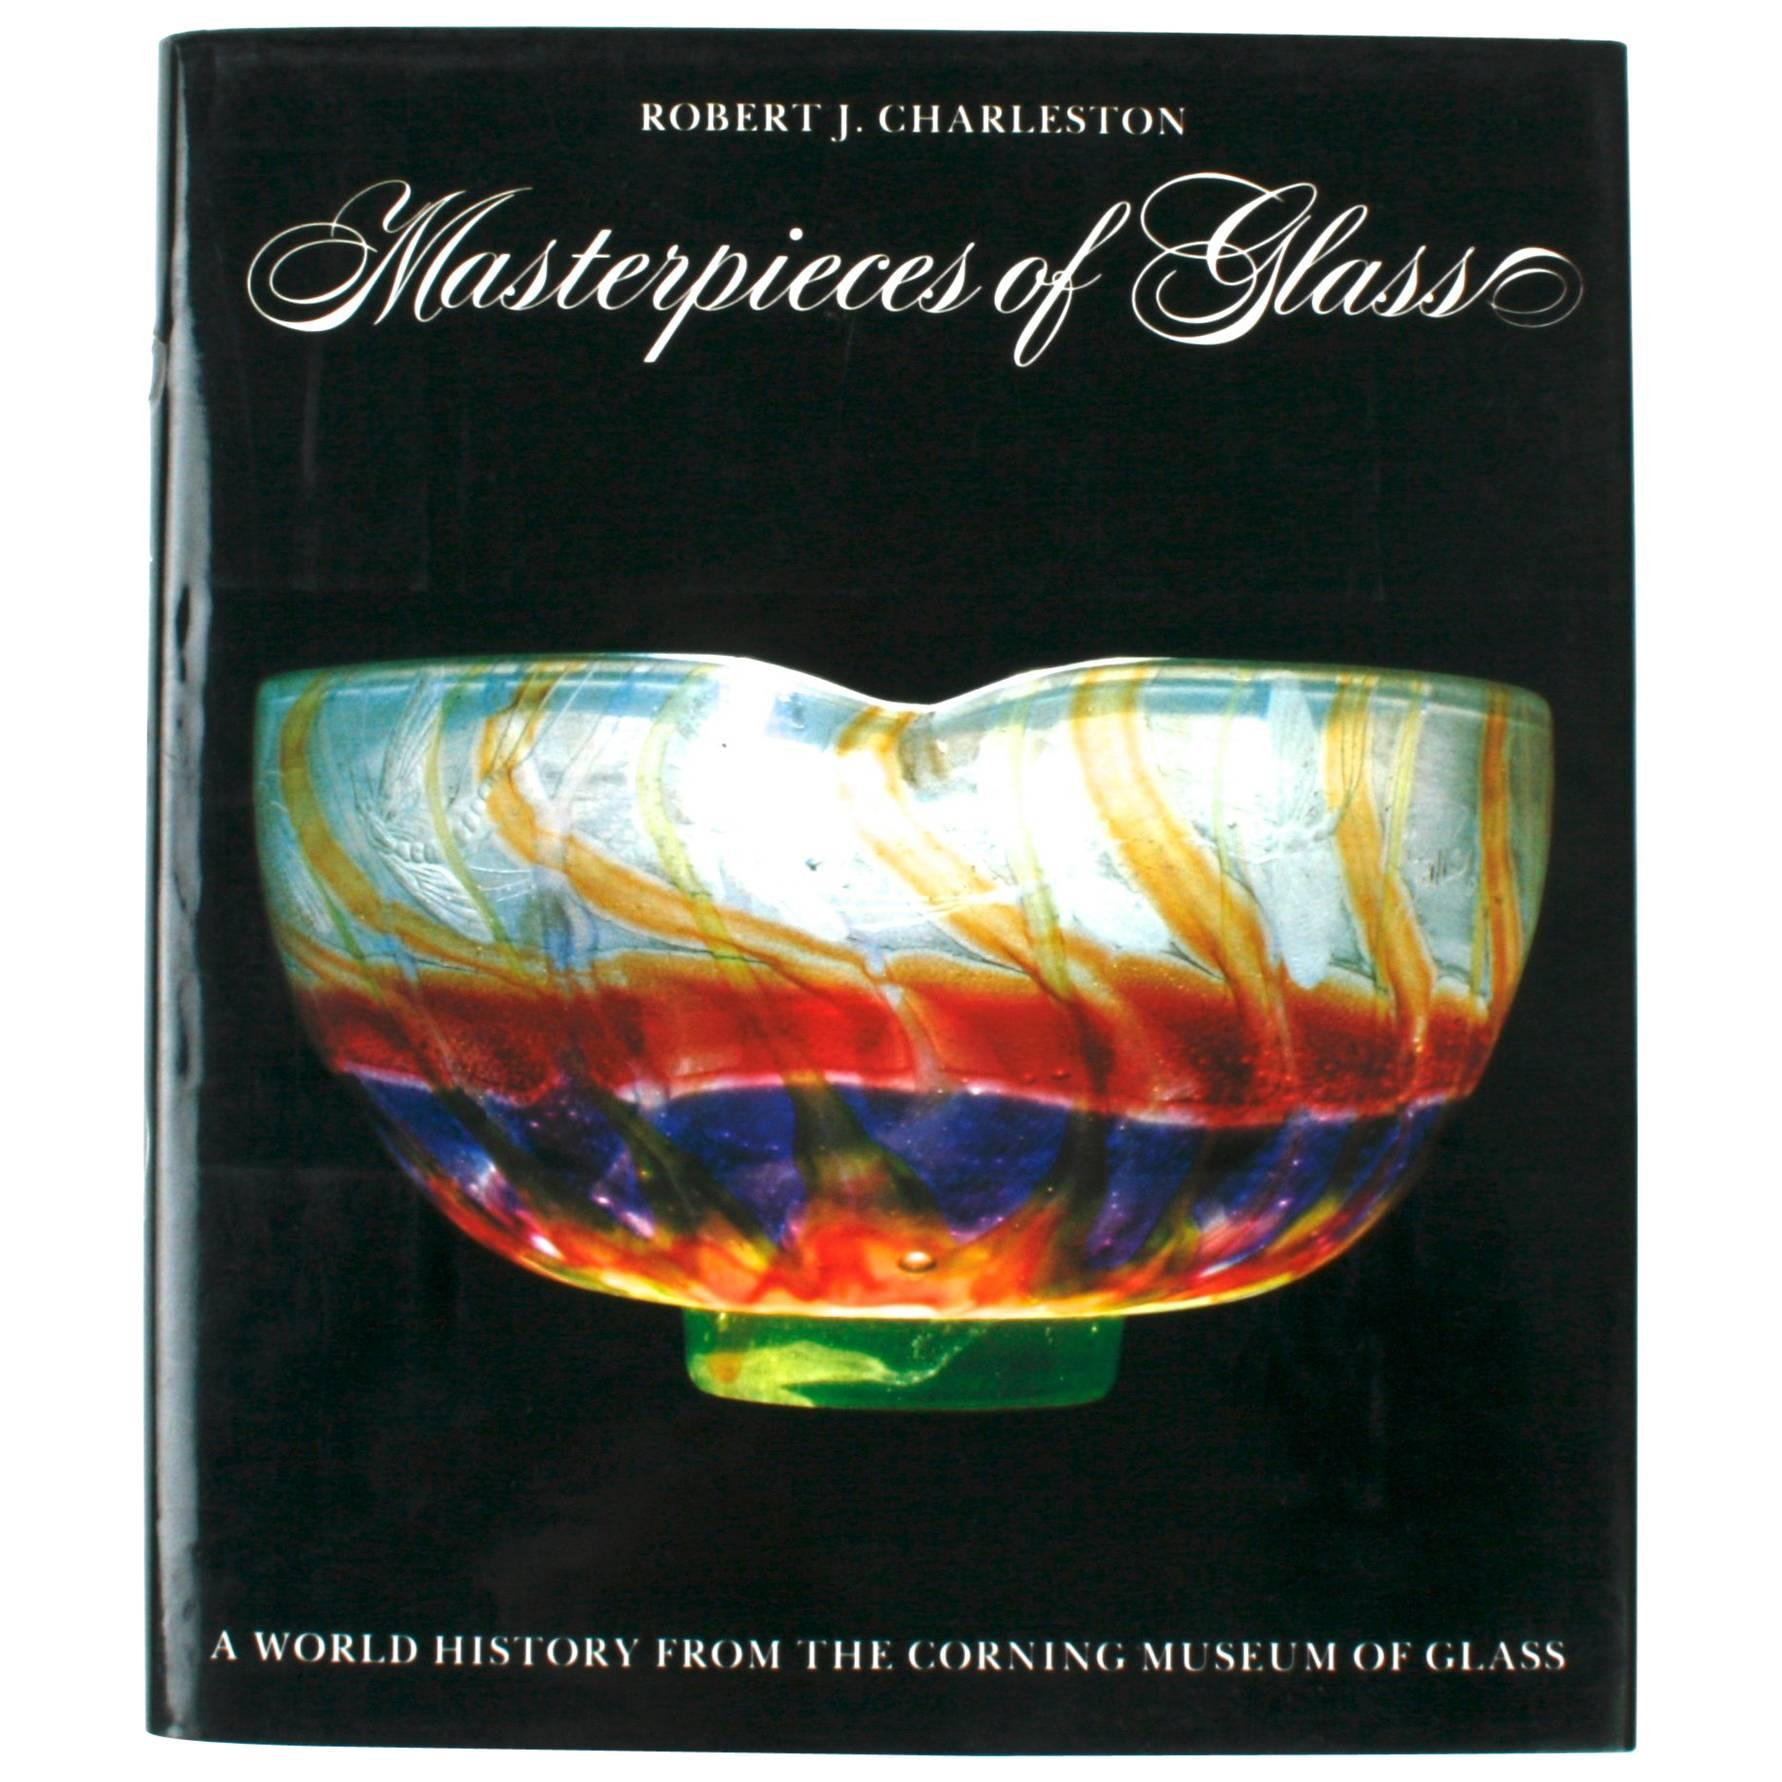 Masterpieces of Glass by Robert J. Charleston, First Edition